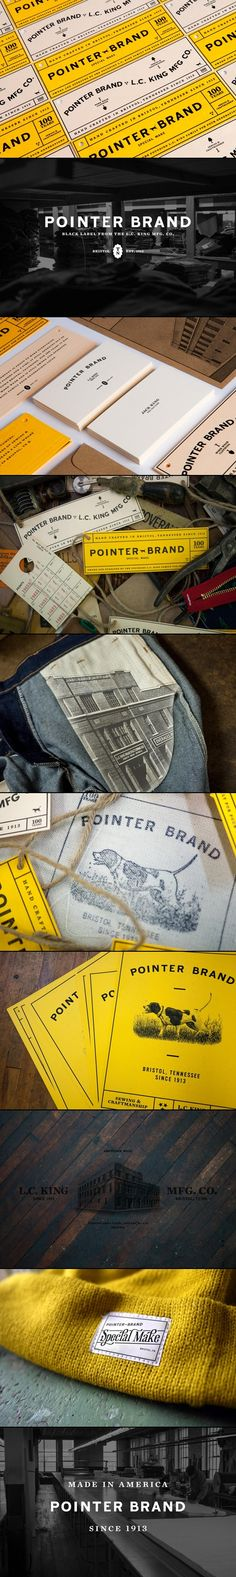 Pointer Brand | Dan Blackman